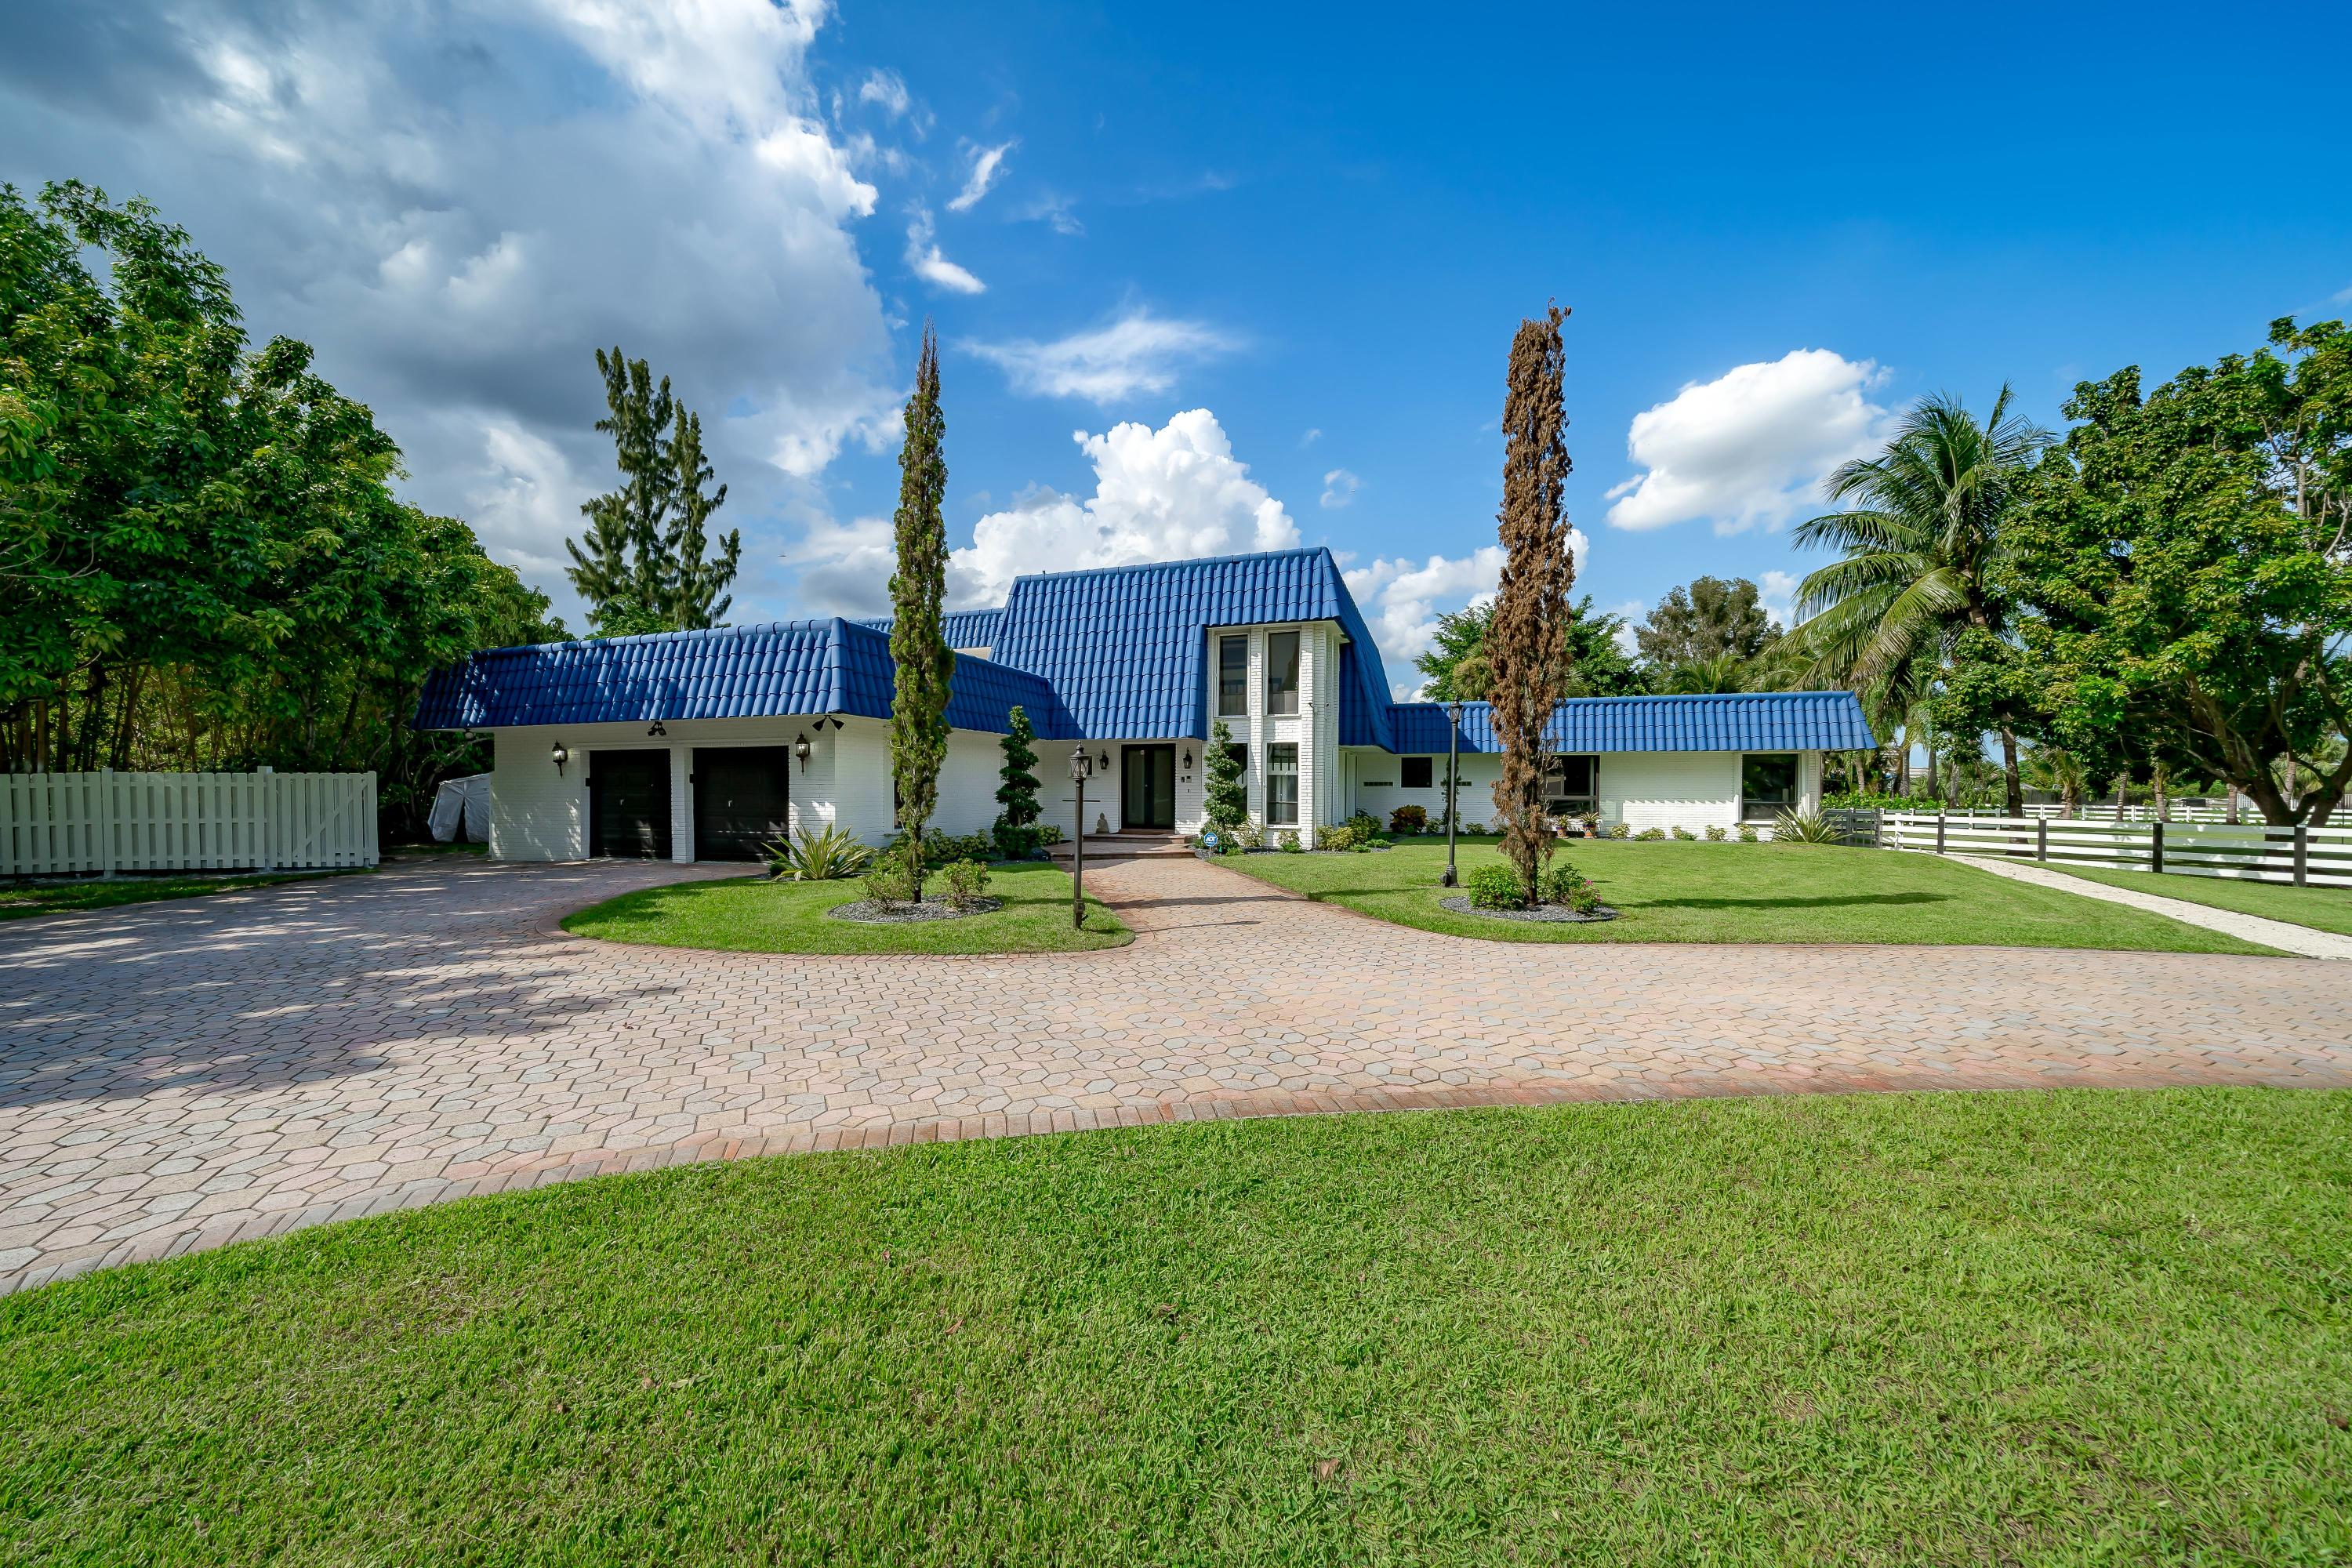 Privacy galore in this multi-generational estate designed with total functionality. Located on a quiet street and surrounded by beautiful trees, this home sits on 0.84 acres! Completely fenced, with a circular driveway and a 2 car garage. Enjoy South Florida living at its finest with a massive pool deck offering plenty of deck space & grass for hours of outdoor fun. This spacious area creates the perfect ambiance to enjoy ''Alfresco Dining'' while taking in the beautiful sunsets.  The summer kitchen even offers a pizza oven for family gatherings full of fun.  The sunken built in fire pit is a perfect way to wind down after a hard days work.  The floor plan offers an ideal layout with an oversized Owner's Suite downstairs as well as another full bedroom and bath. The second story offers 3 spacious bedrooms and 2 full baths. One bedroom has its own balcony where you can bask in the sun or use as a private retreat. The light and bright gourmet kitchen is every Chef's dream.  Boasting two hood vents, stove top, hibachi grill, wall oven, and plenty of custom cabinets.  The Live Edge Countertop will be the talk of every gathering! Adjacent to the Kitchen is a custom Wine Bar/Serving Area.  Perfect for large parties.   The large living area offers a wood burning fireplace and French doors leading out to the pool deck.  New flooring has been added to the entire first floor and upstairs hallway.  3 commercial grade a/c units, 2 water heaters, new baseboard throughout, new light fixtures throughout, new, new, new. This move-in ready estate is freshly painted inside and out creating an open canvas with its neutral décor.  NO HOA fees offer the freedom of having the space you need for RVs, Trucks, and other cool toys.    See complete list of upgrades attached in the MLS.